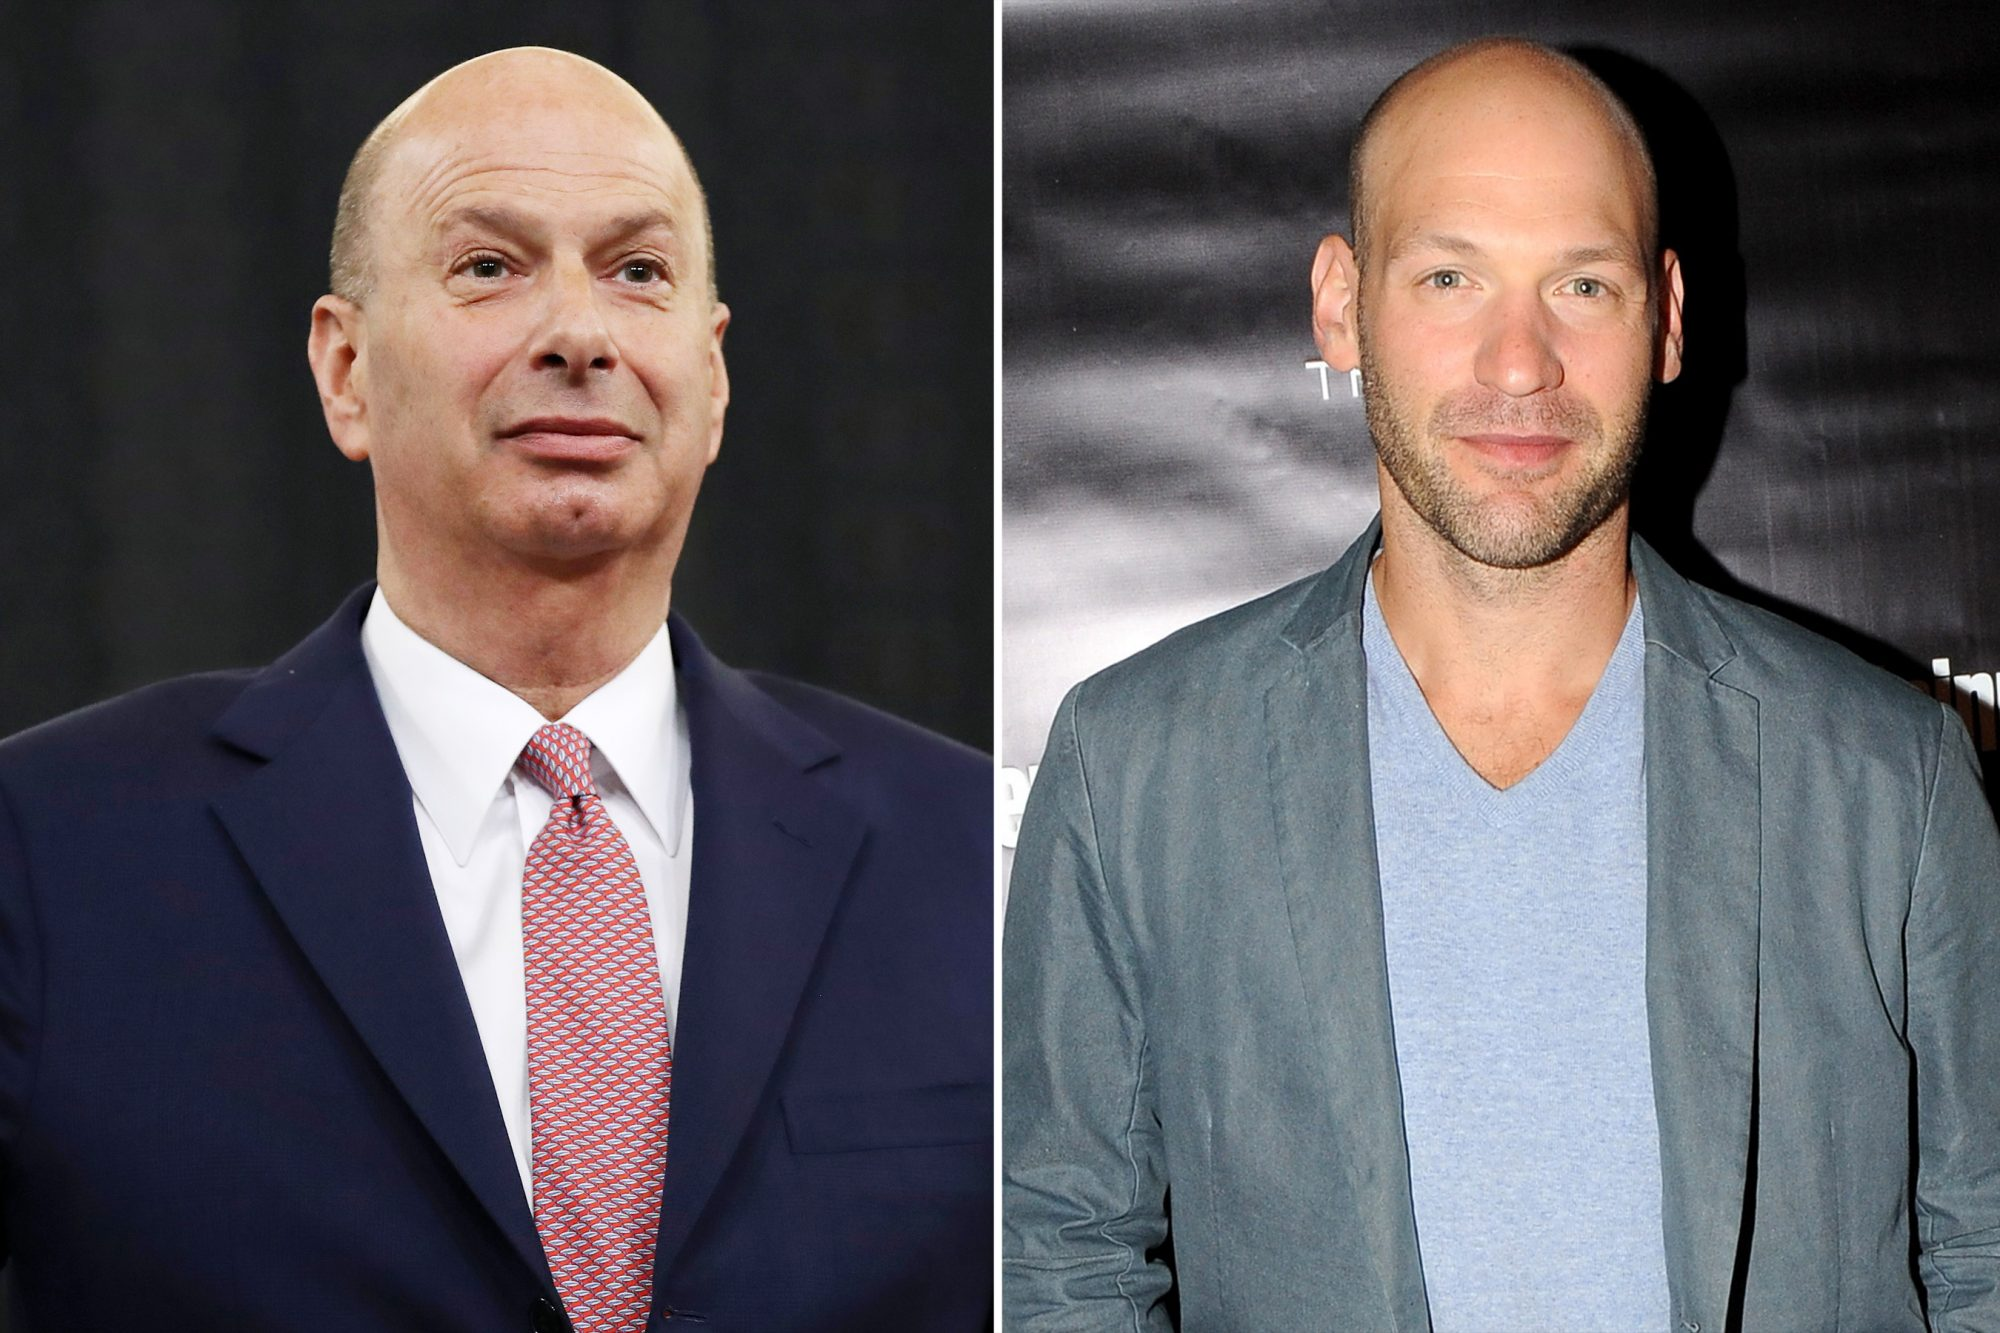 American diplomat Gordon Sondland, played by Corey Stoll